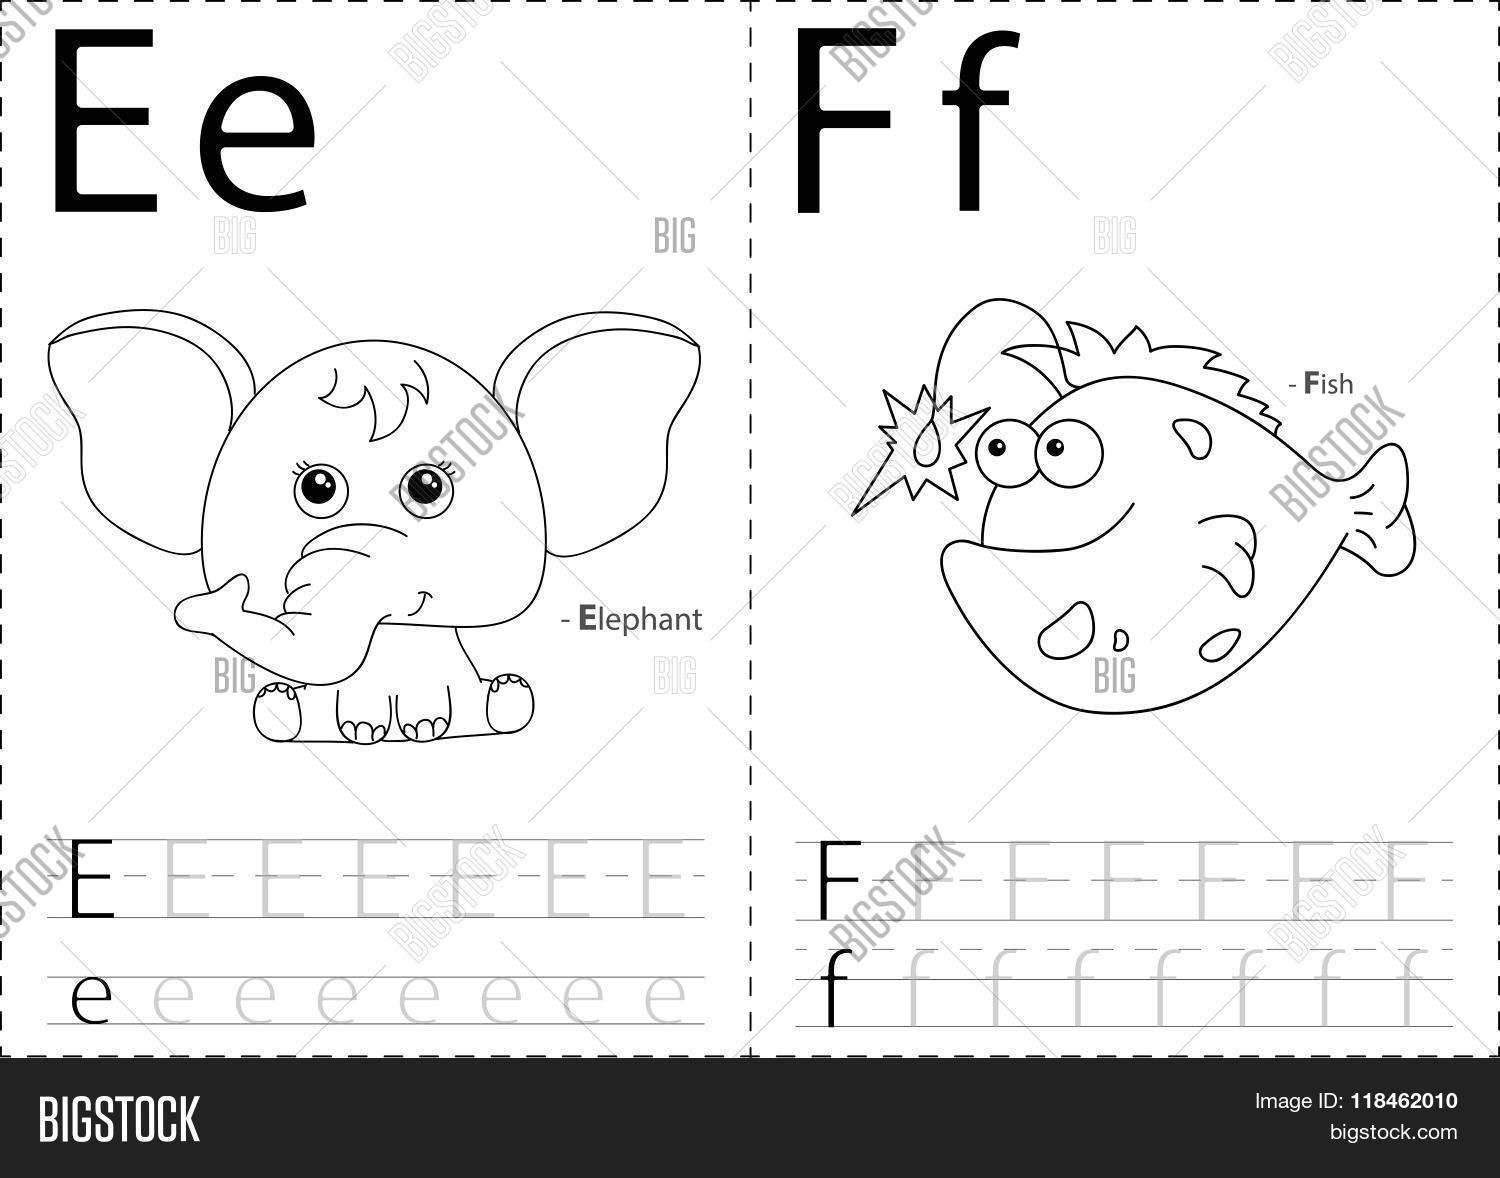 Cartoon Elephant And Fish Alphabet Tracing Worksheet Writing A Z And Educational Game For Kids